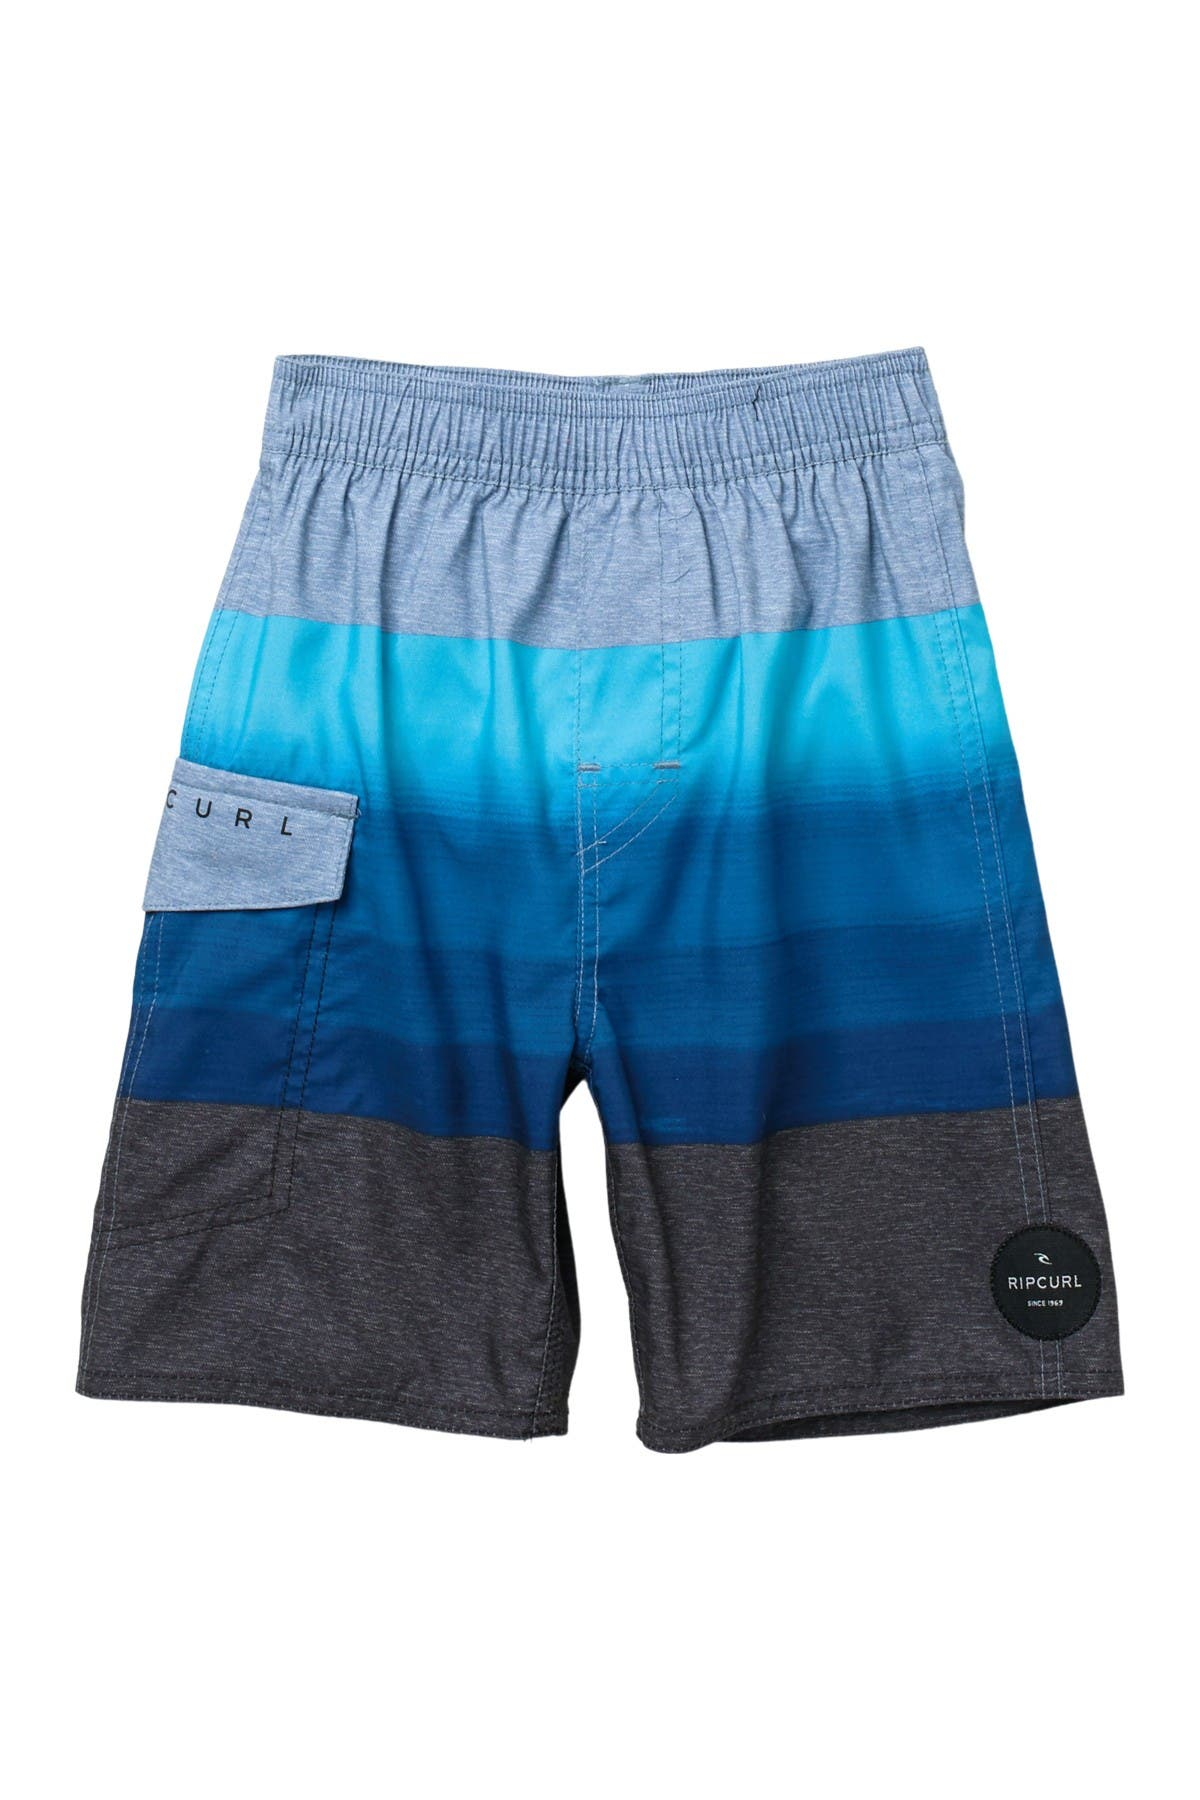 Image of Rip Curl Radiate Volley Boardshorts